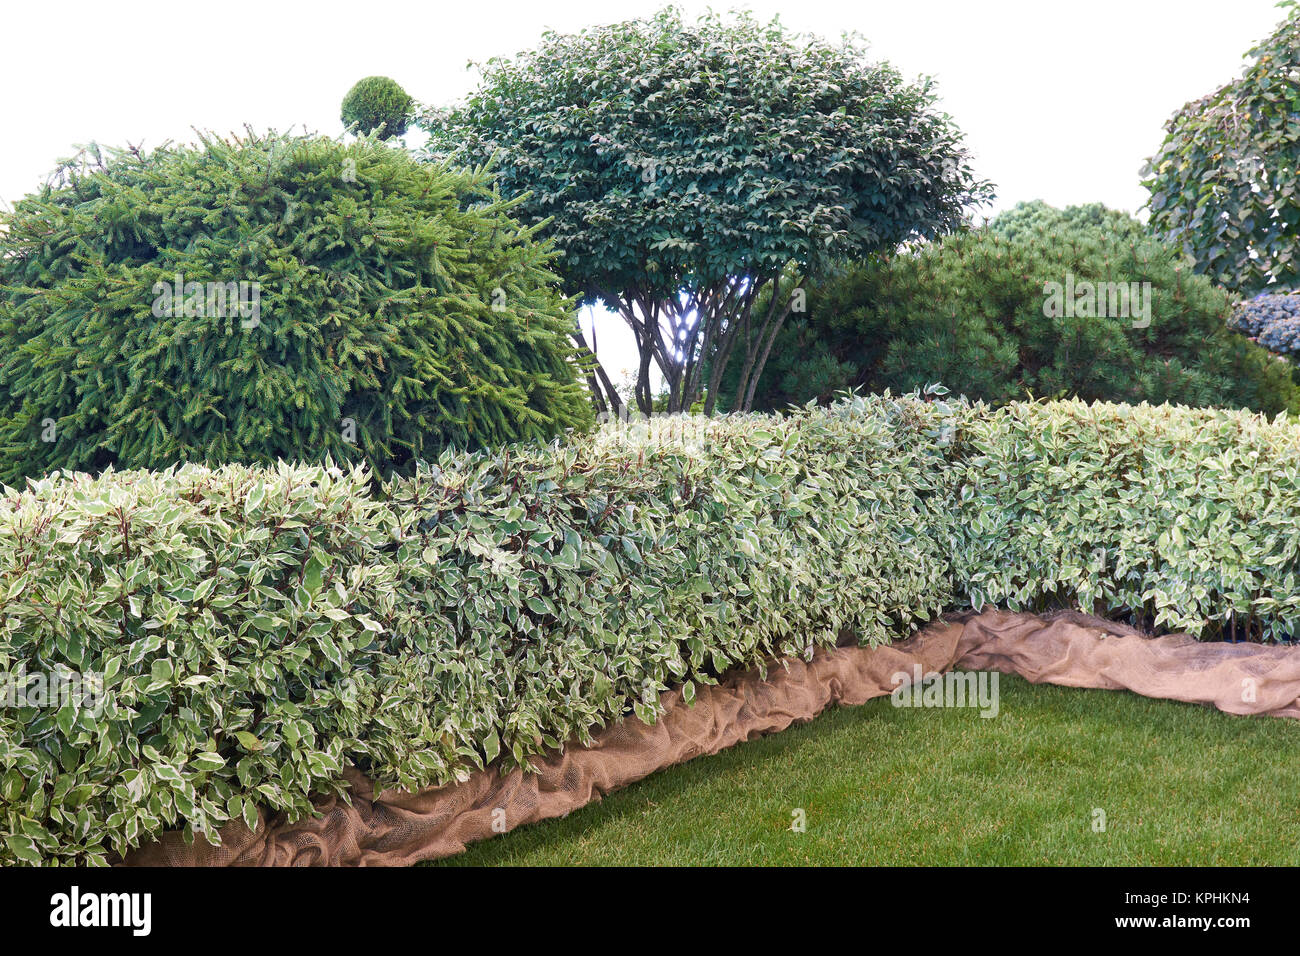 Lawn, green fence and variation of coniferous shrubs in the garden - Stock Image